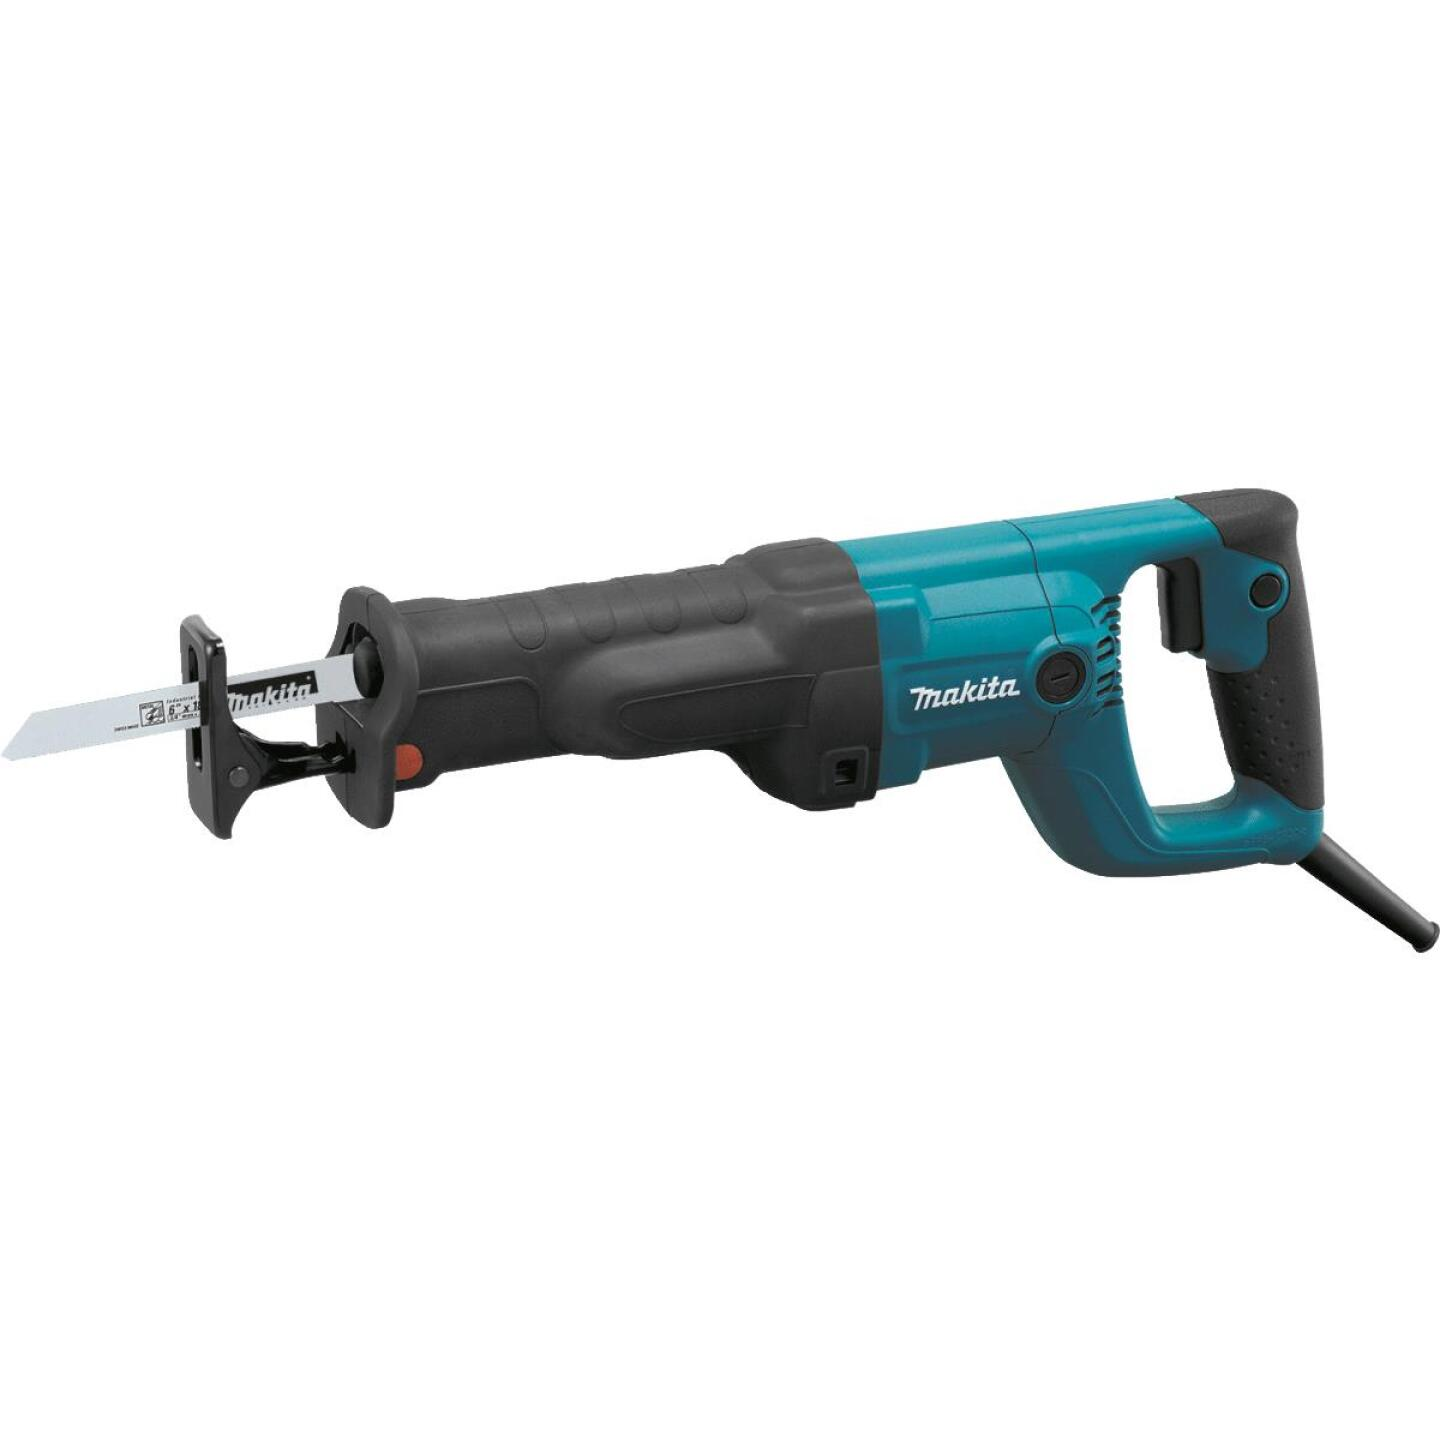 Makita 12-Amp Reciprocating Saw Image 2